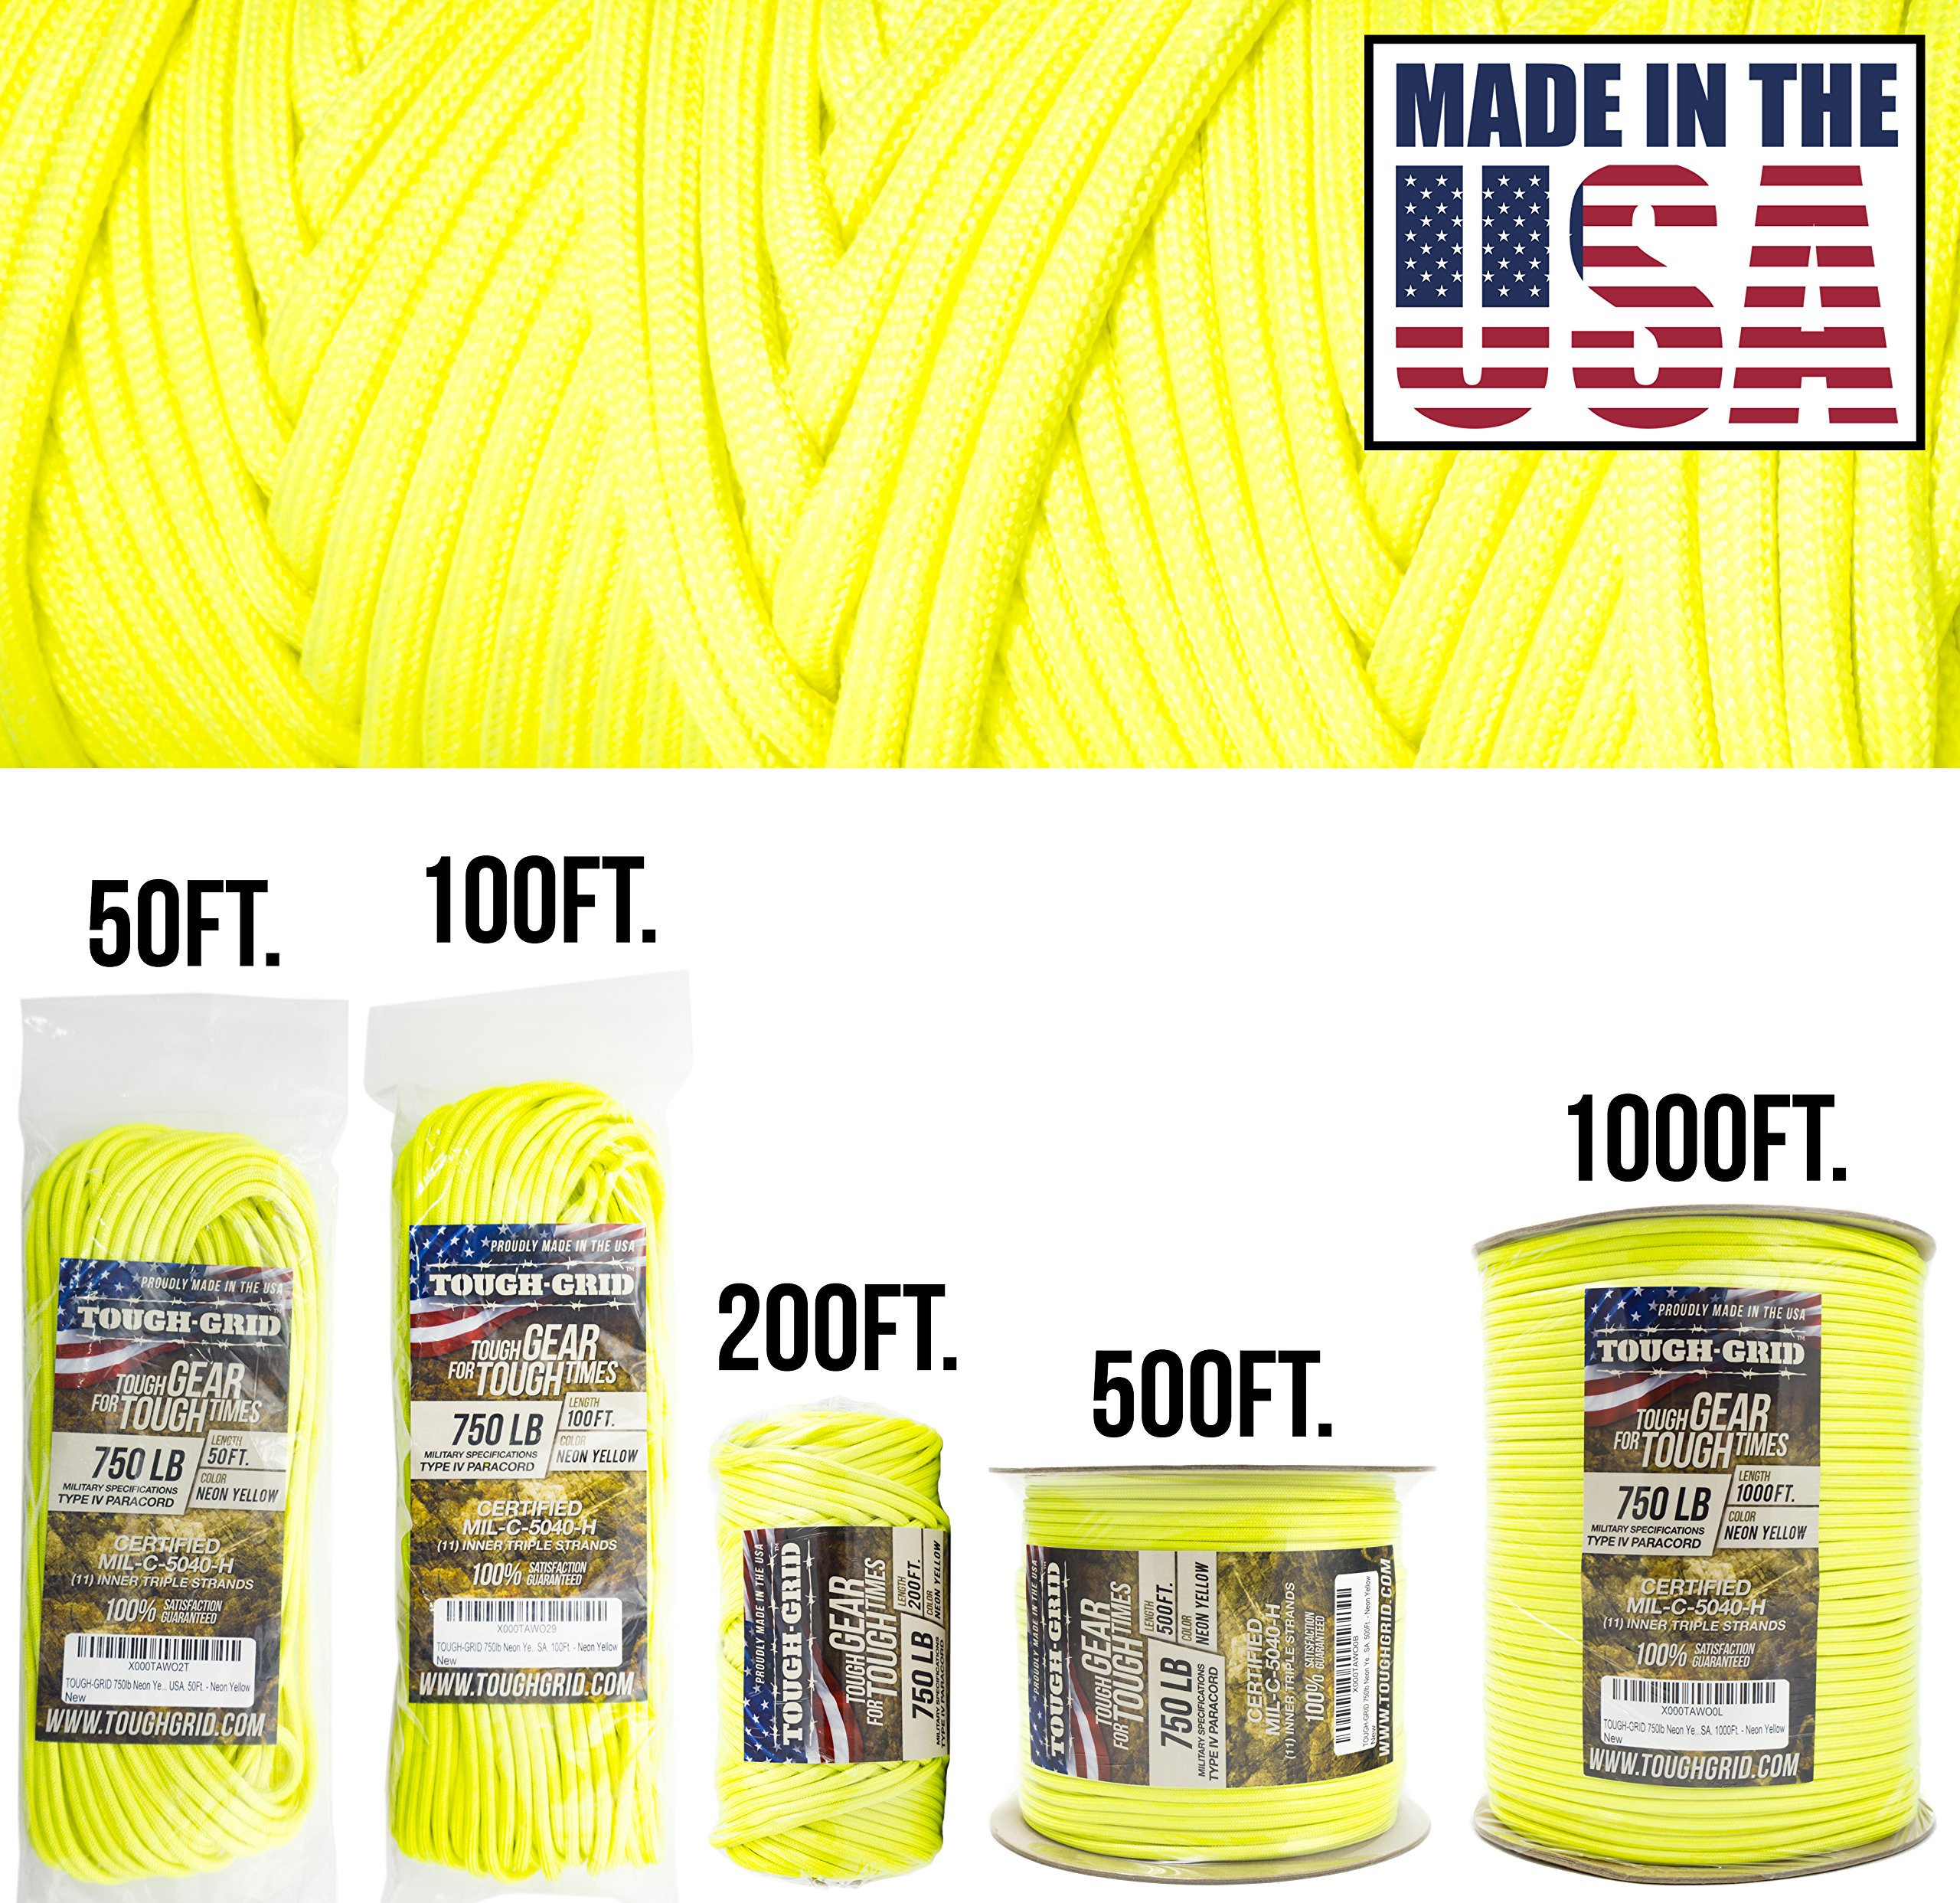 TOUGH-GRID 750lb Neon Yellow Paracord/Parachute Cord - Genuine Mil Spec Type IV 750lb Paracord Used by The US Military (MIl-C-5040-H) - 100% Nylon - Made in The USA. 500Ft. - Neon Yellow by TOUGH-GRID